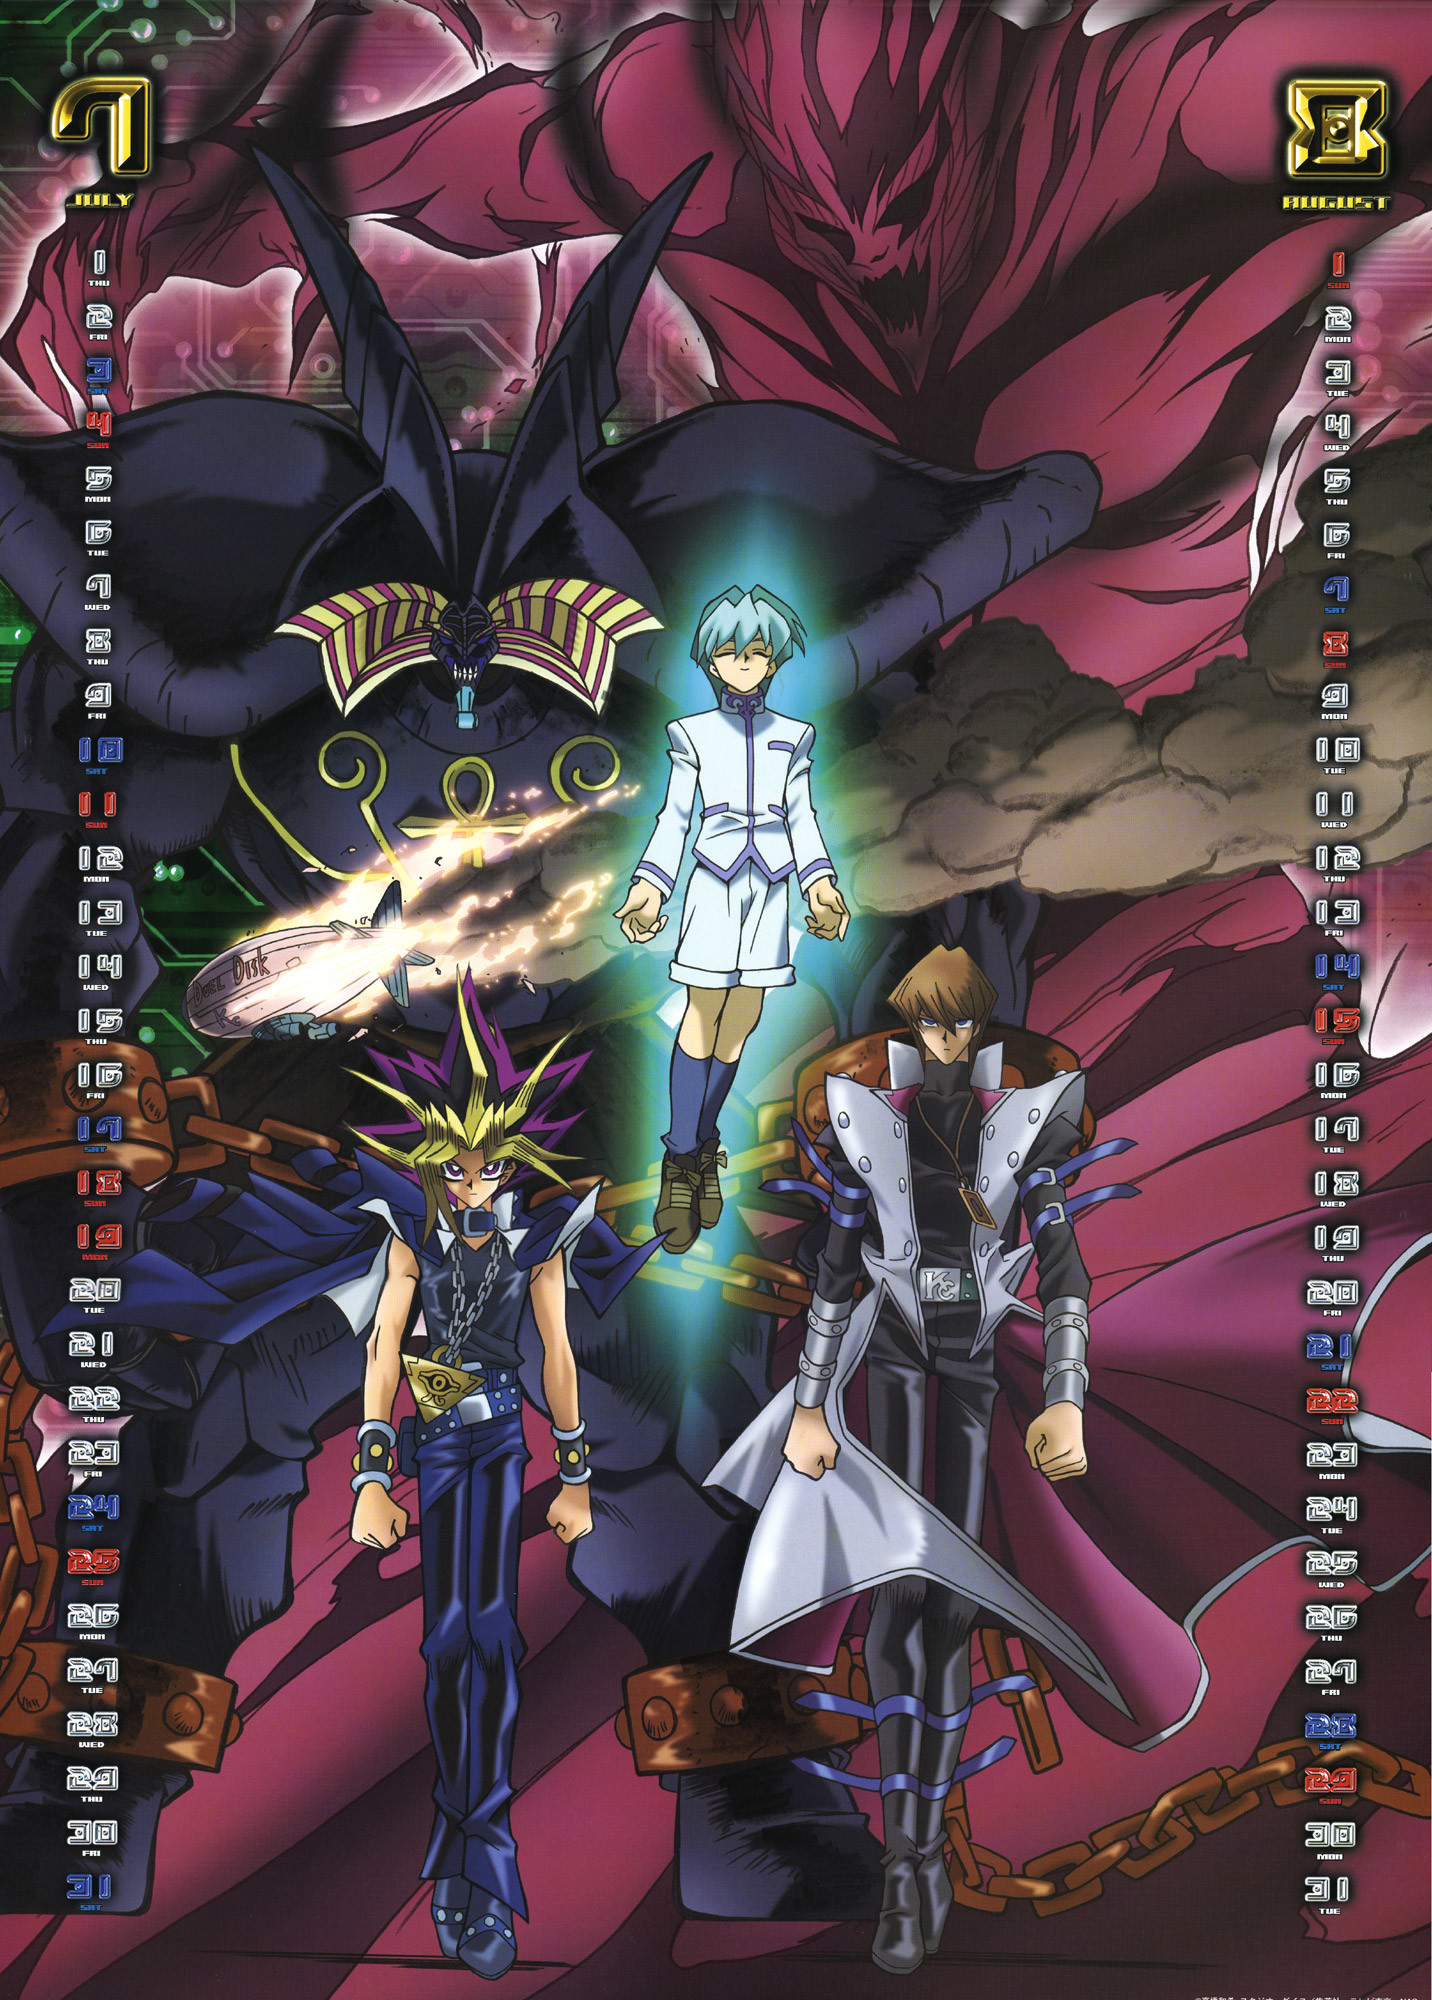 Res: 1432x2000, ... download Yu-Gi-Oh! Duel Monsters image